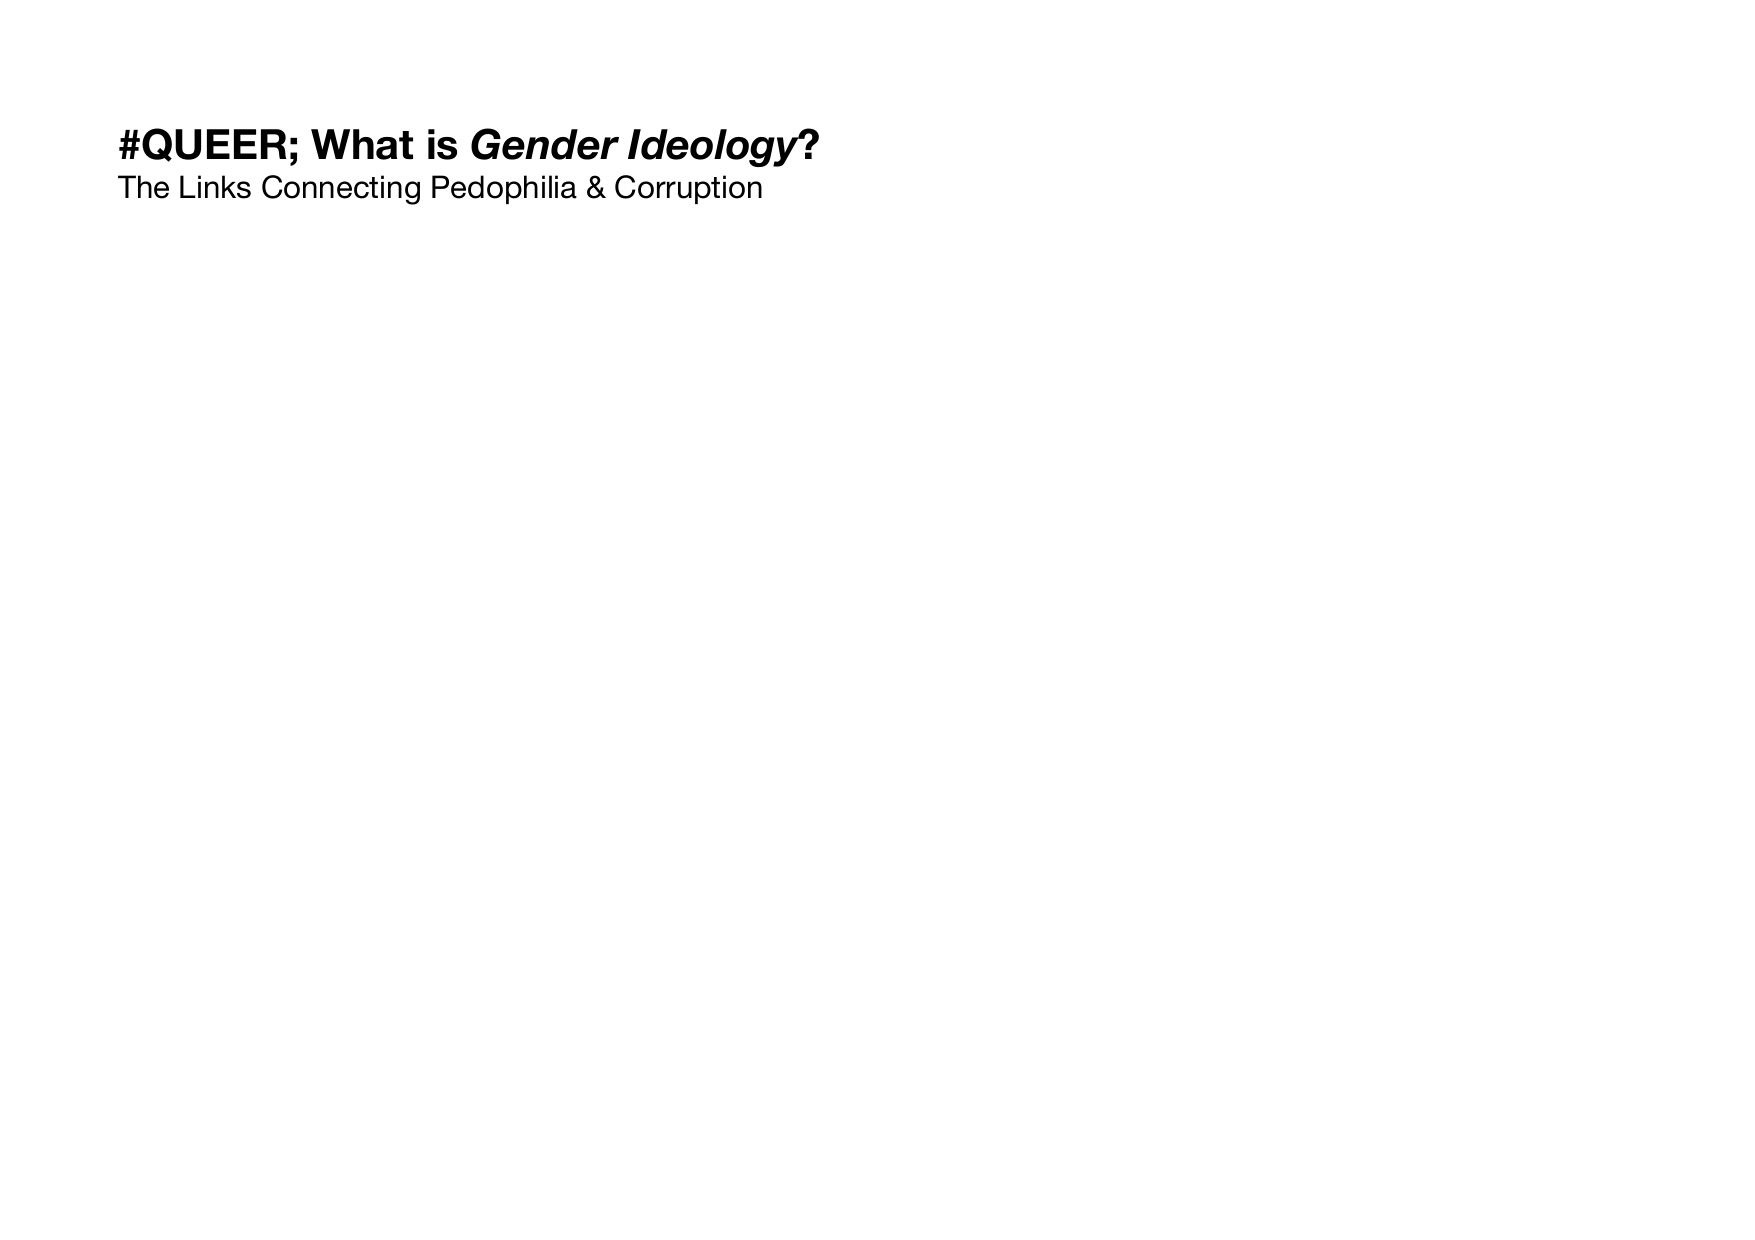 https://i.ibb.co/4mLcM7n/QUEER-What-is-Gender-Ideology-Ismael-Ogando-GROUND-June-2019-01